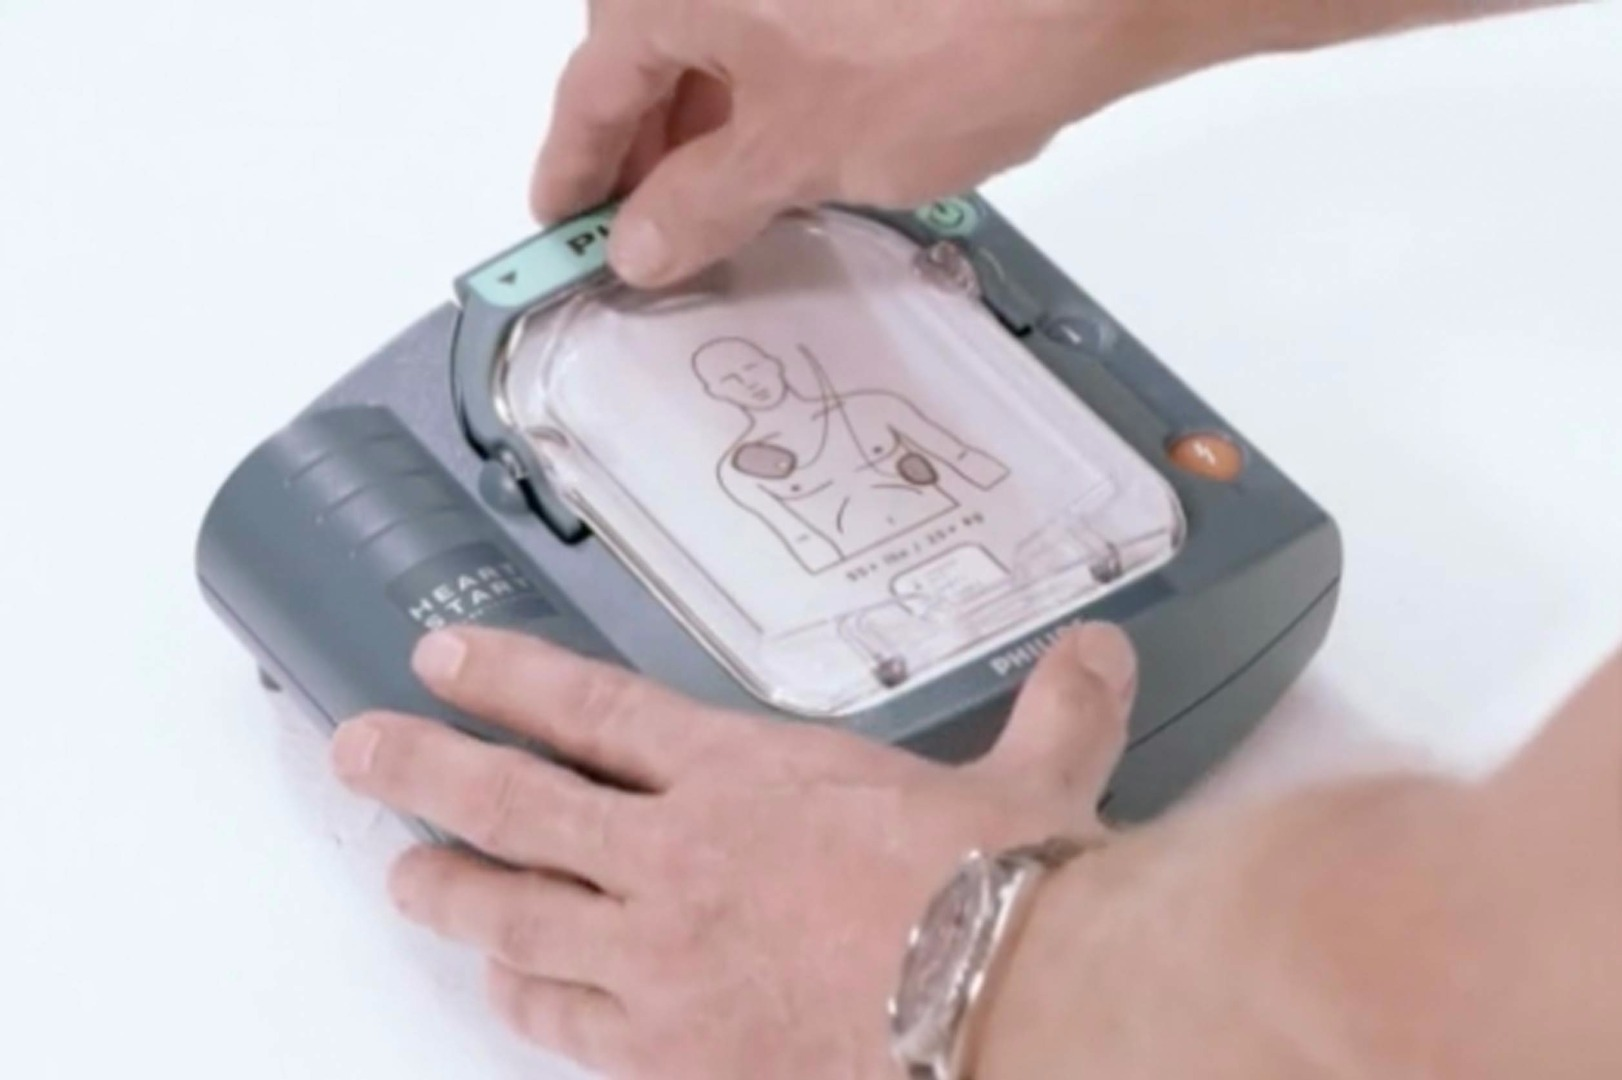 Using a defibrillator (AED) correctly